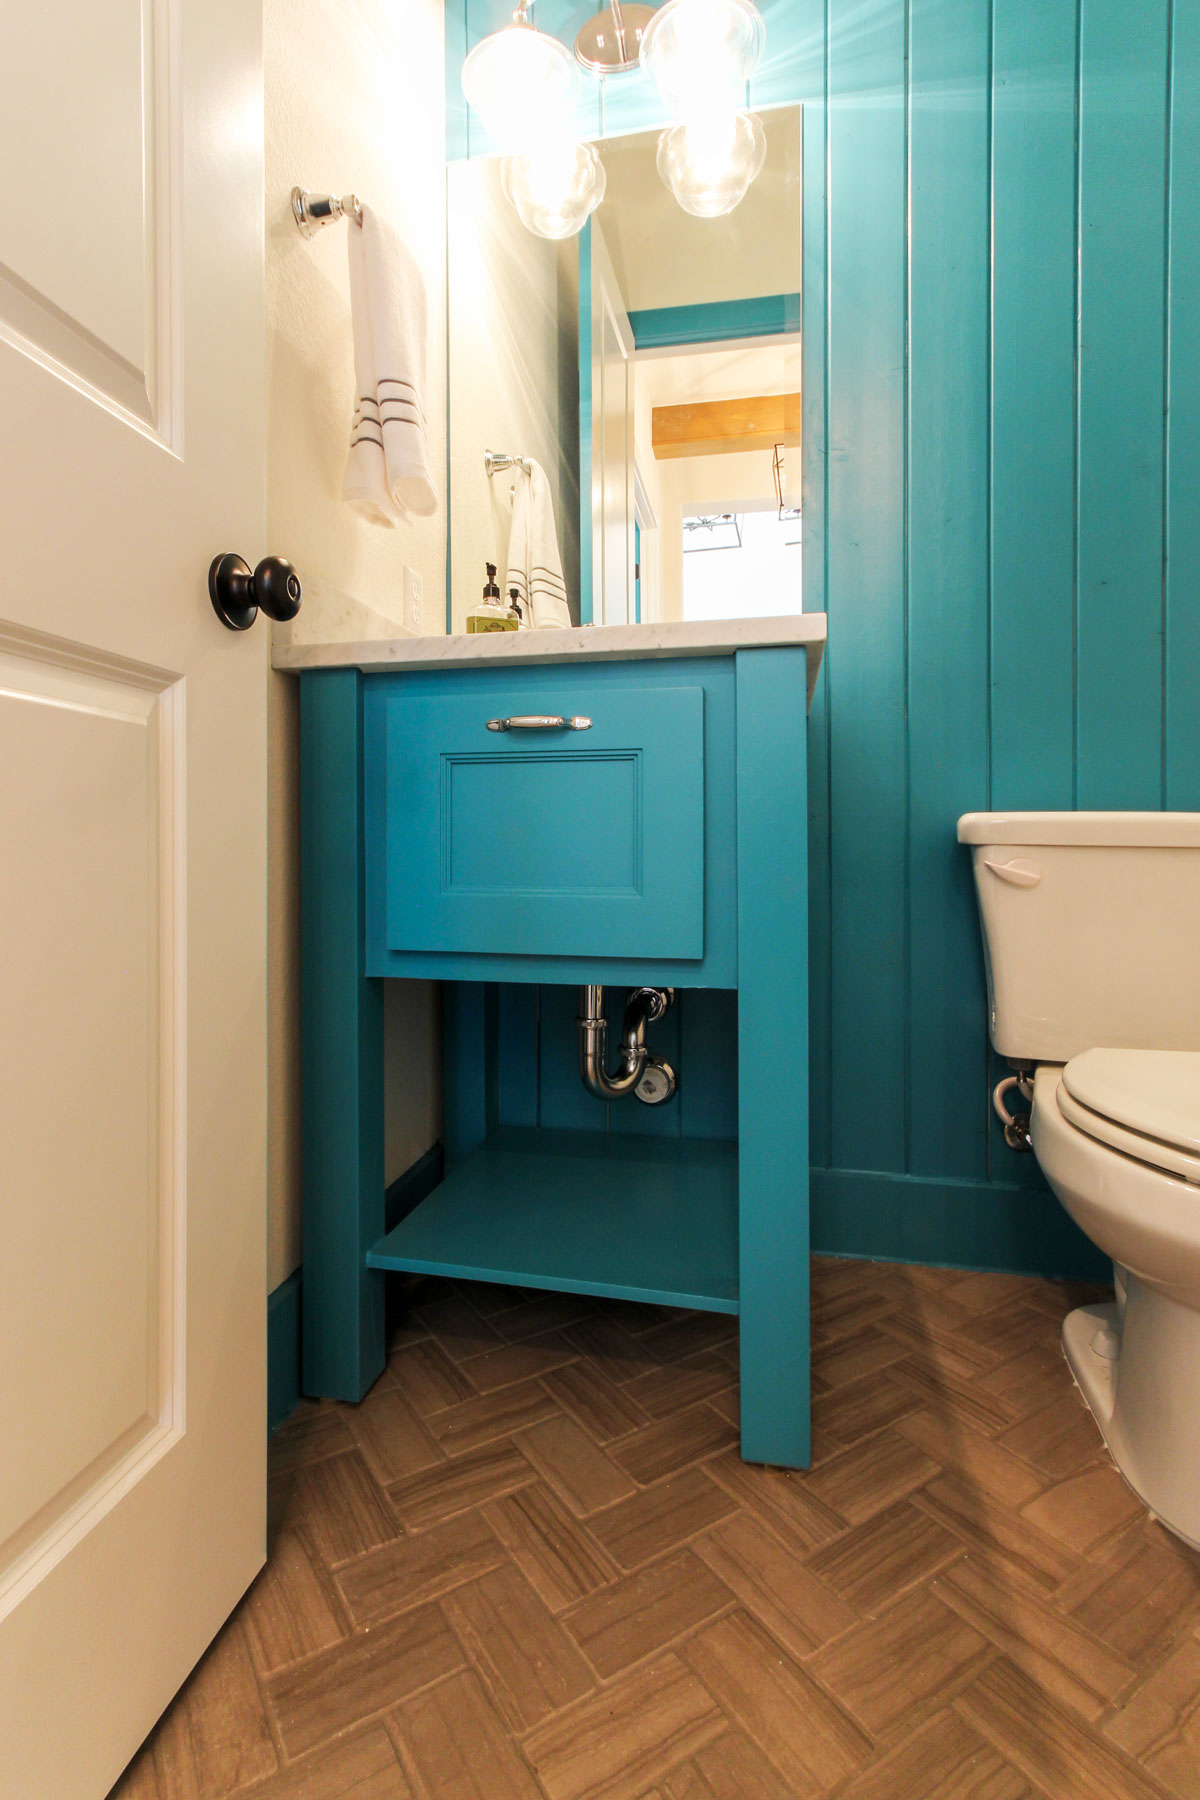 View Larger Image Turquoise bathroom vanity with MW6 frame mitered door by TaylorCraft